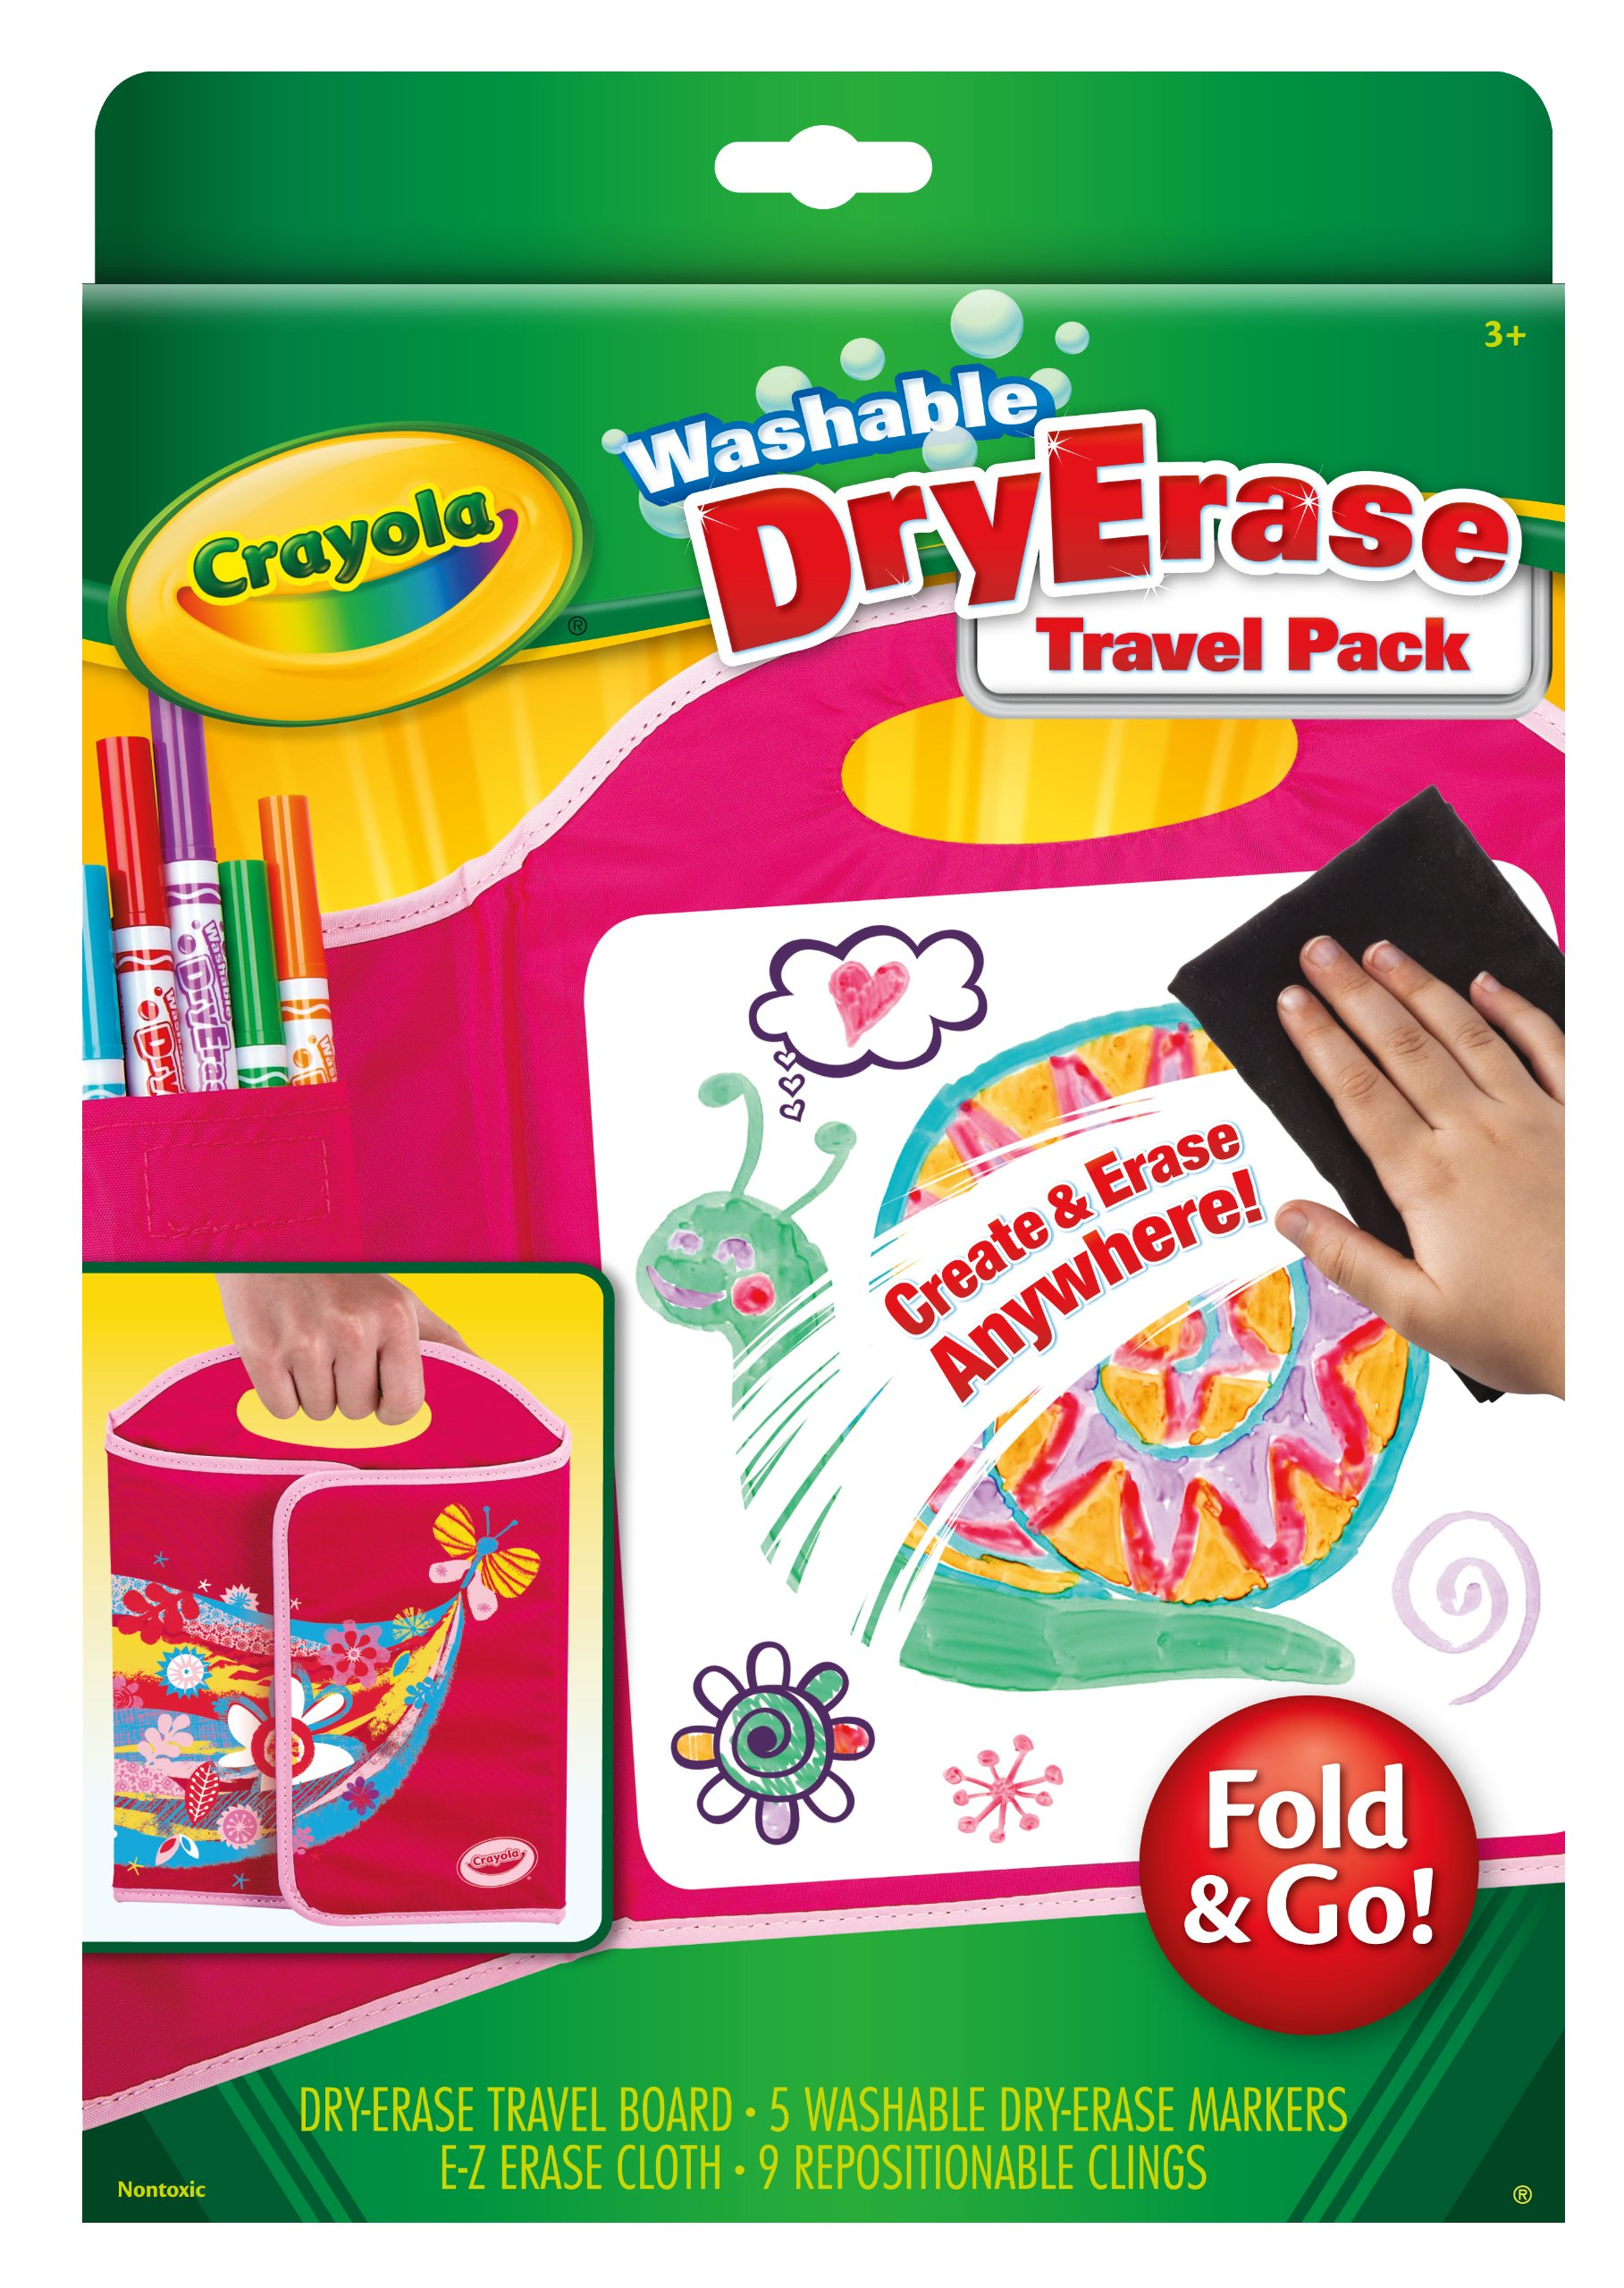 Crayola Washable Dry-Erase Travel Pack, Fold & Go, Art Tools, Great for Travel